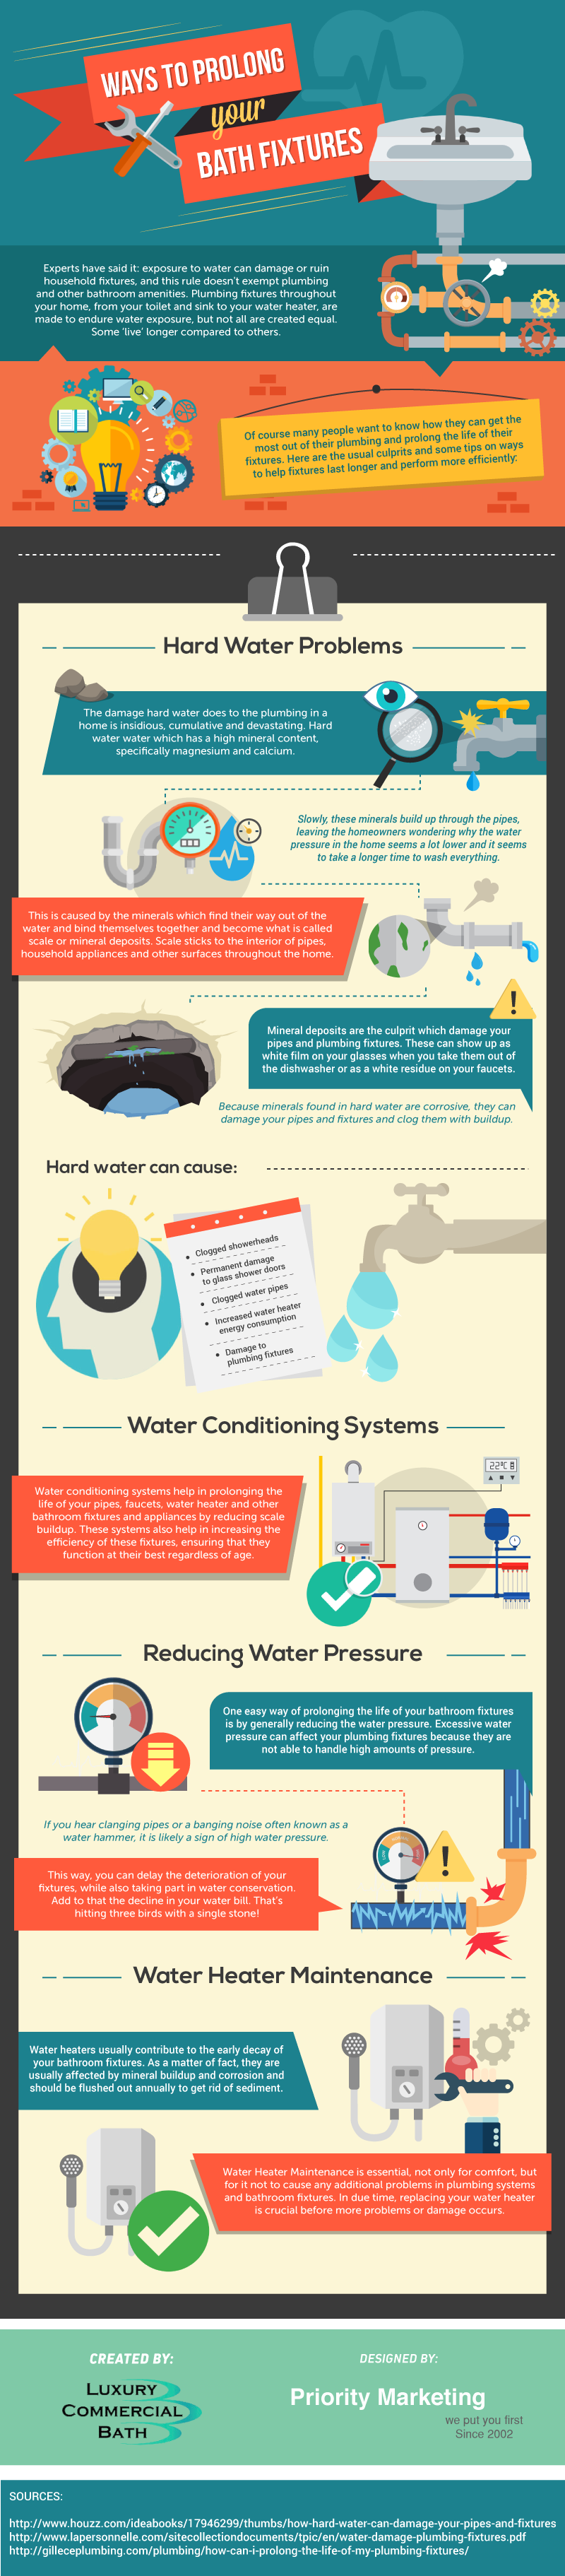 Ways To Prolong Your Bath Fixtures - Infographic